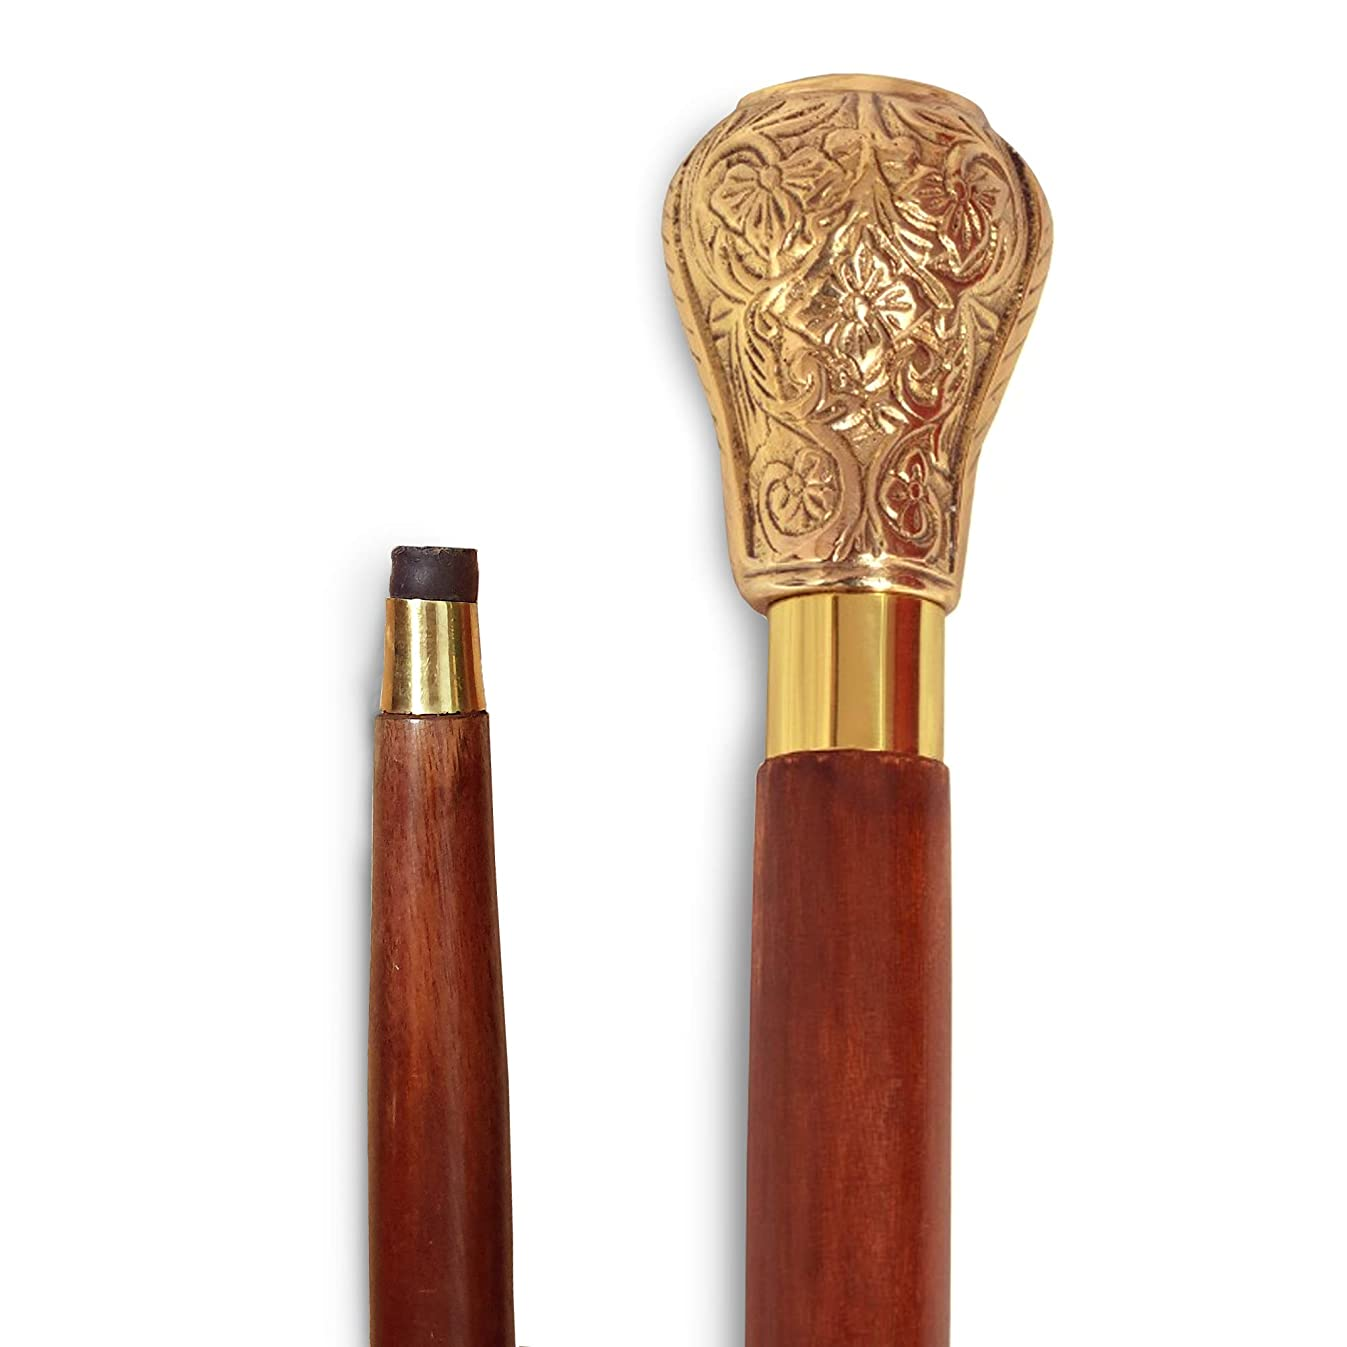 Lyptus Wood Walking Stick With Regal Brass Knob Handle, Brown And Gold